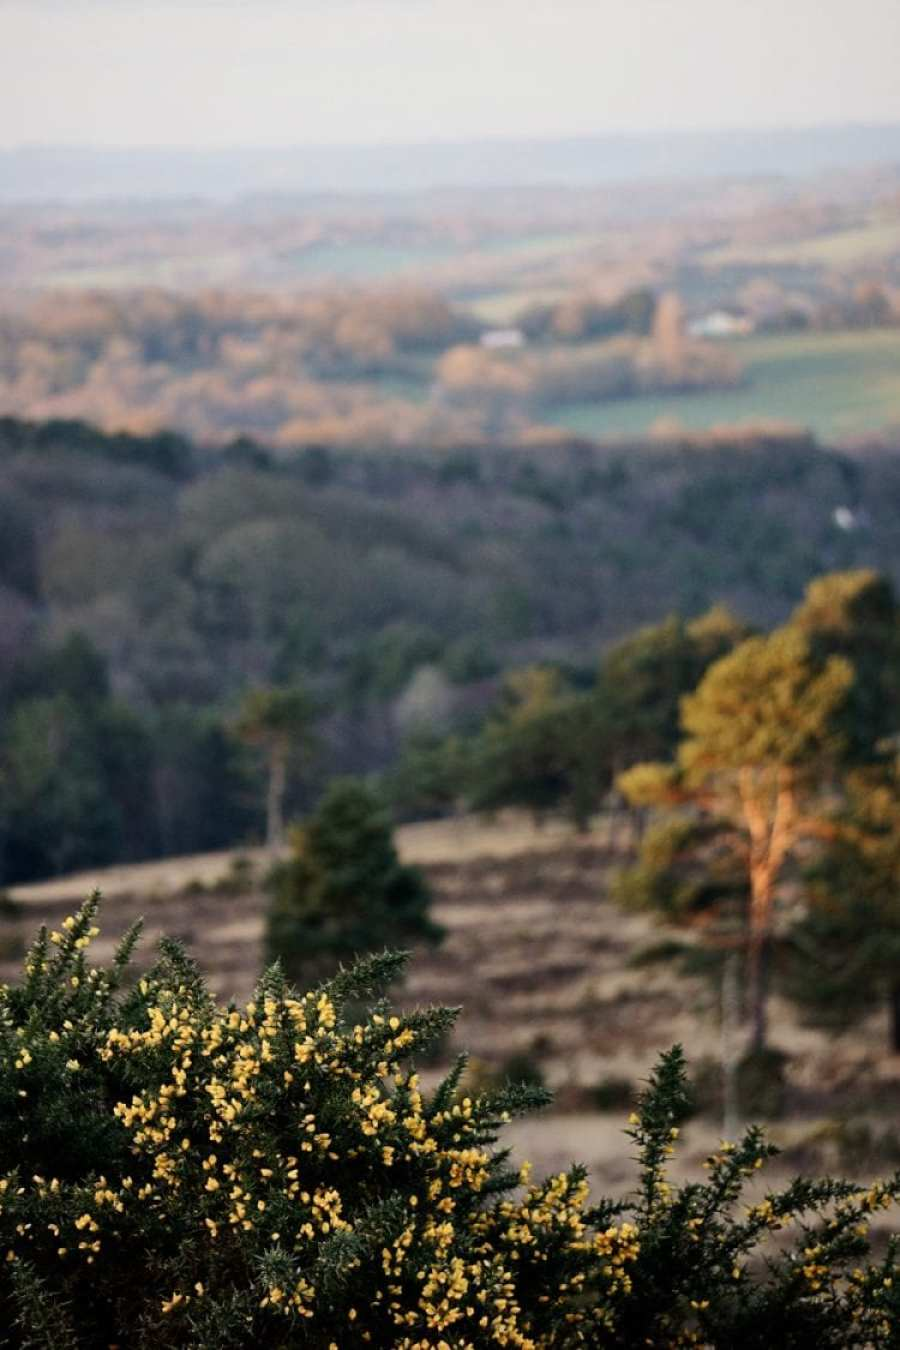 ashdown forest view plus gorse